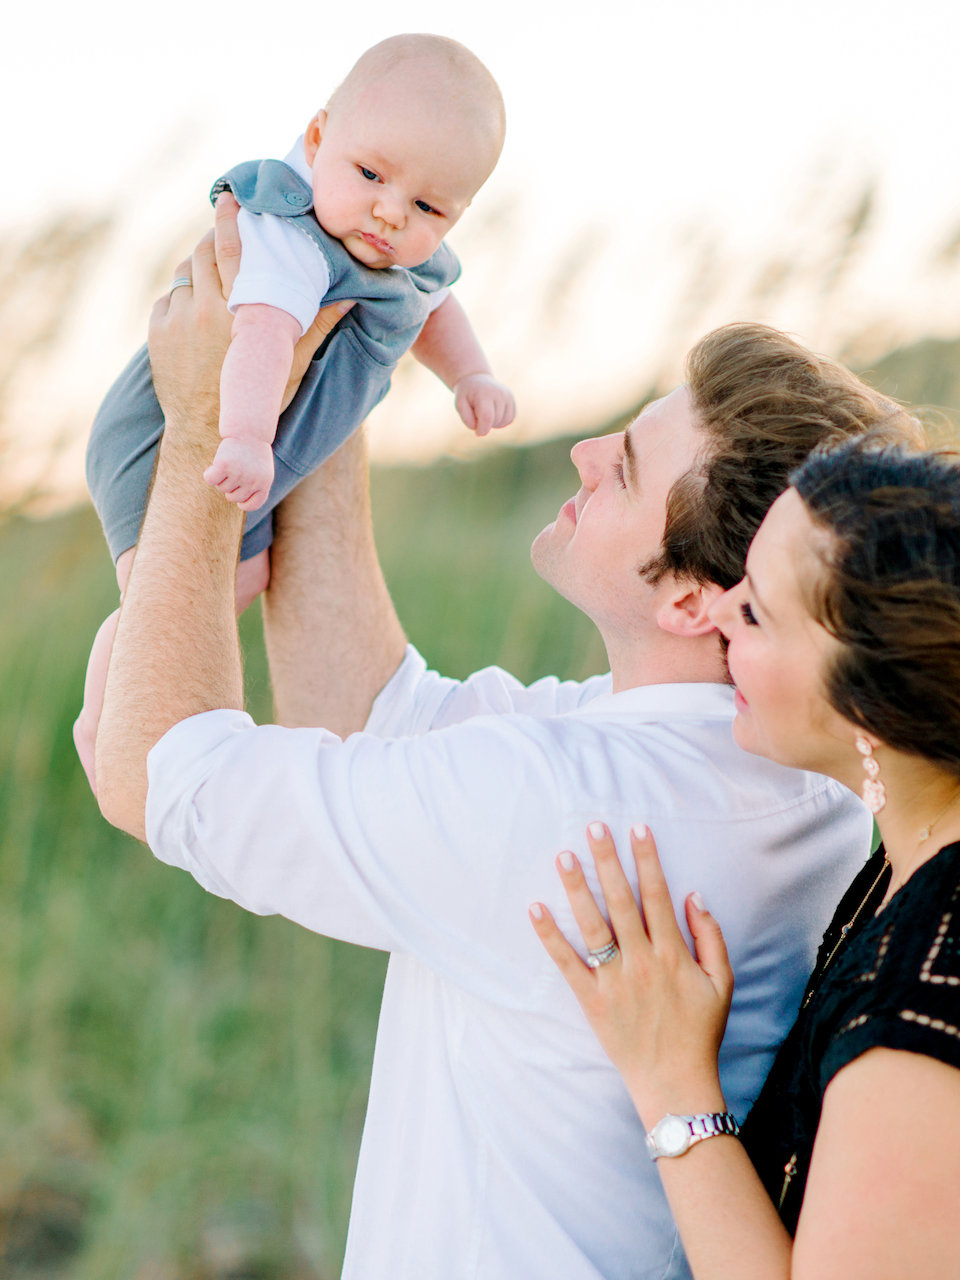 Myrtle Beach family portraits - Family photography in Myrtle Beach at State Park